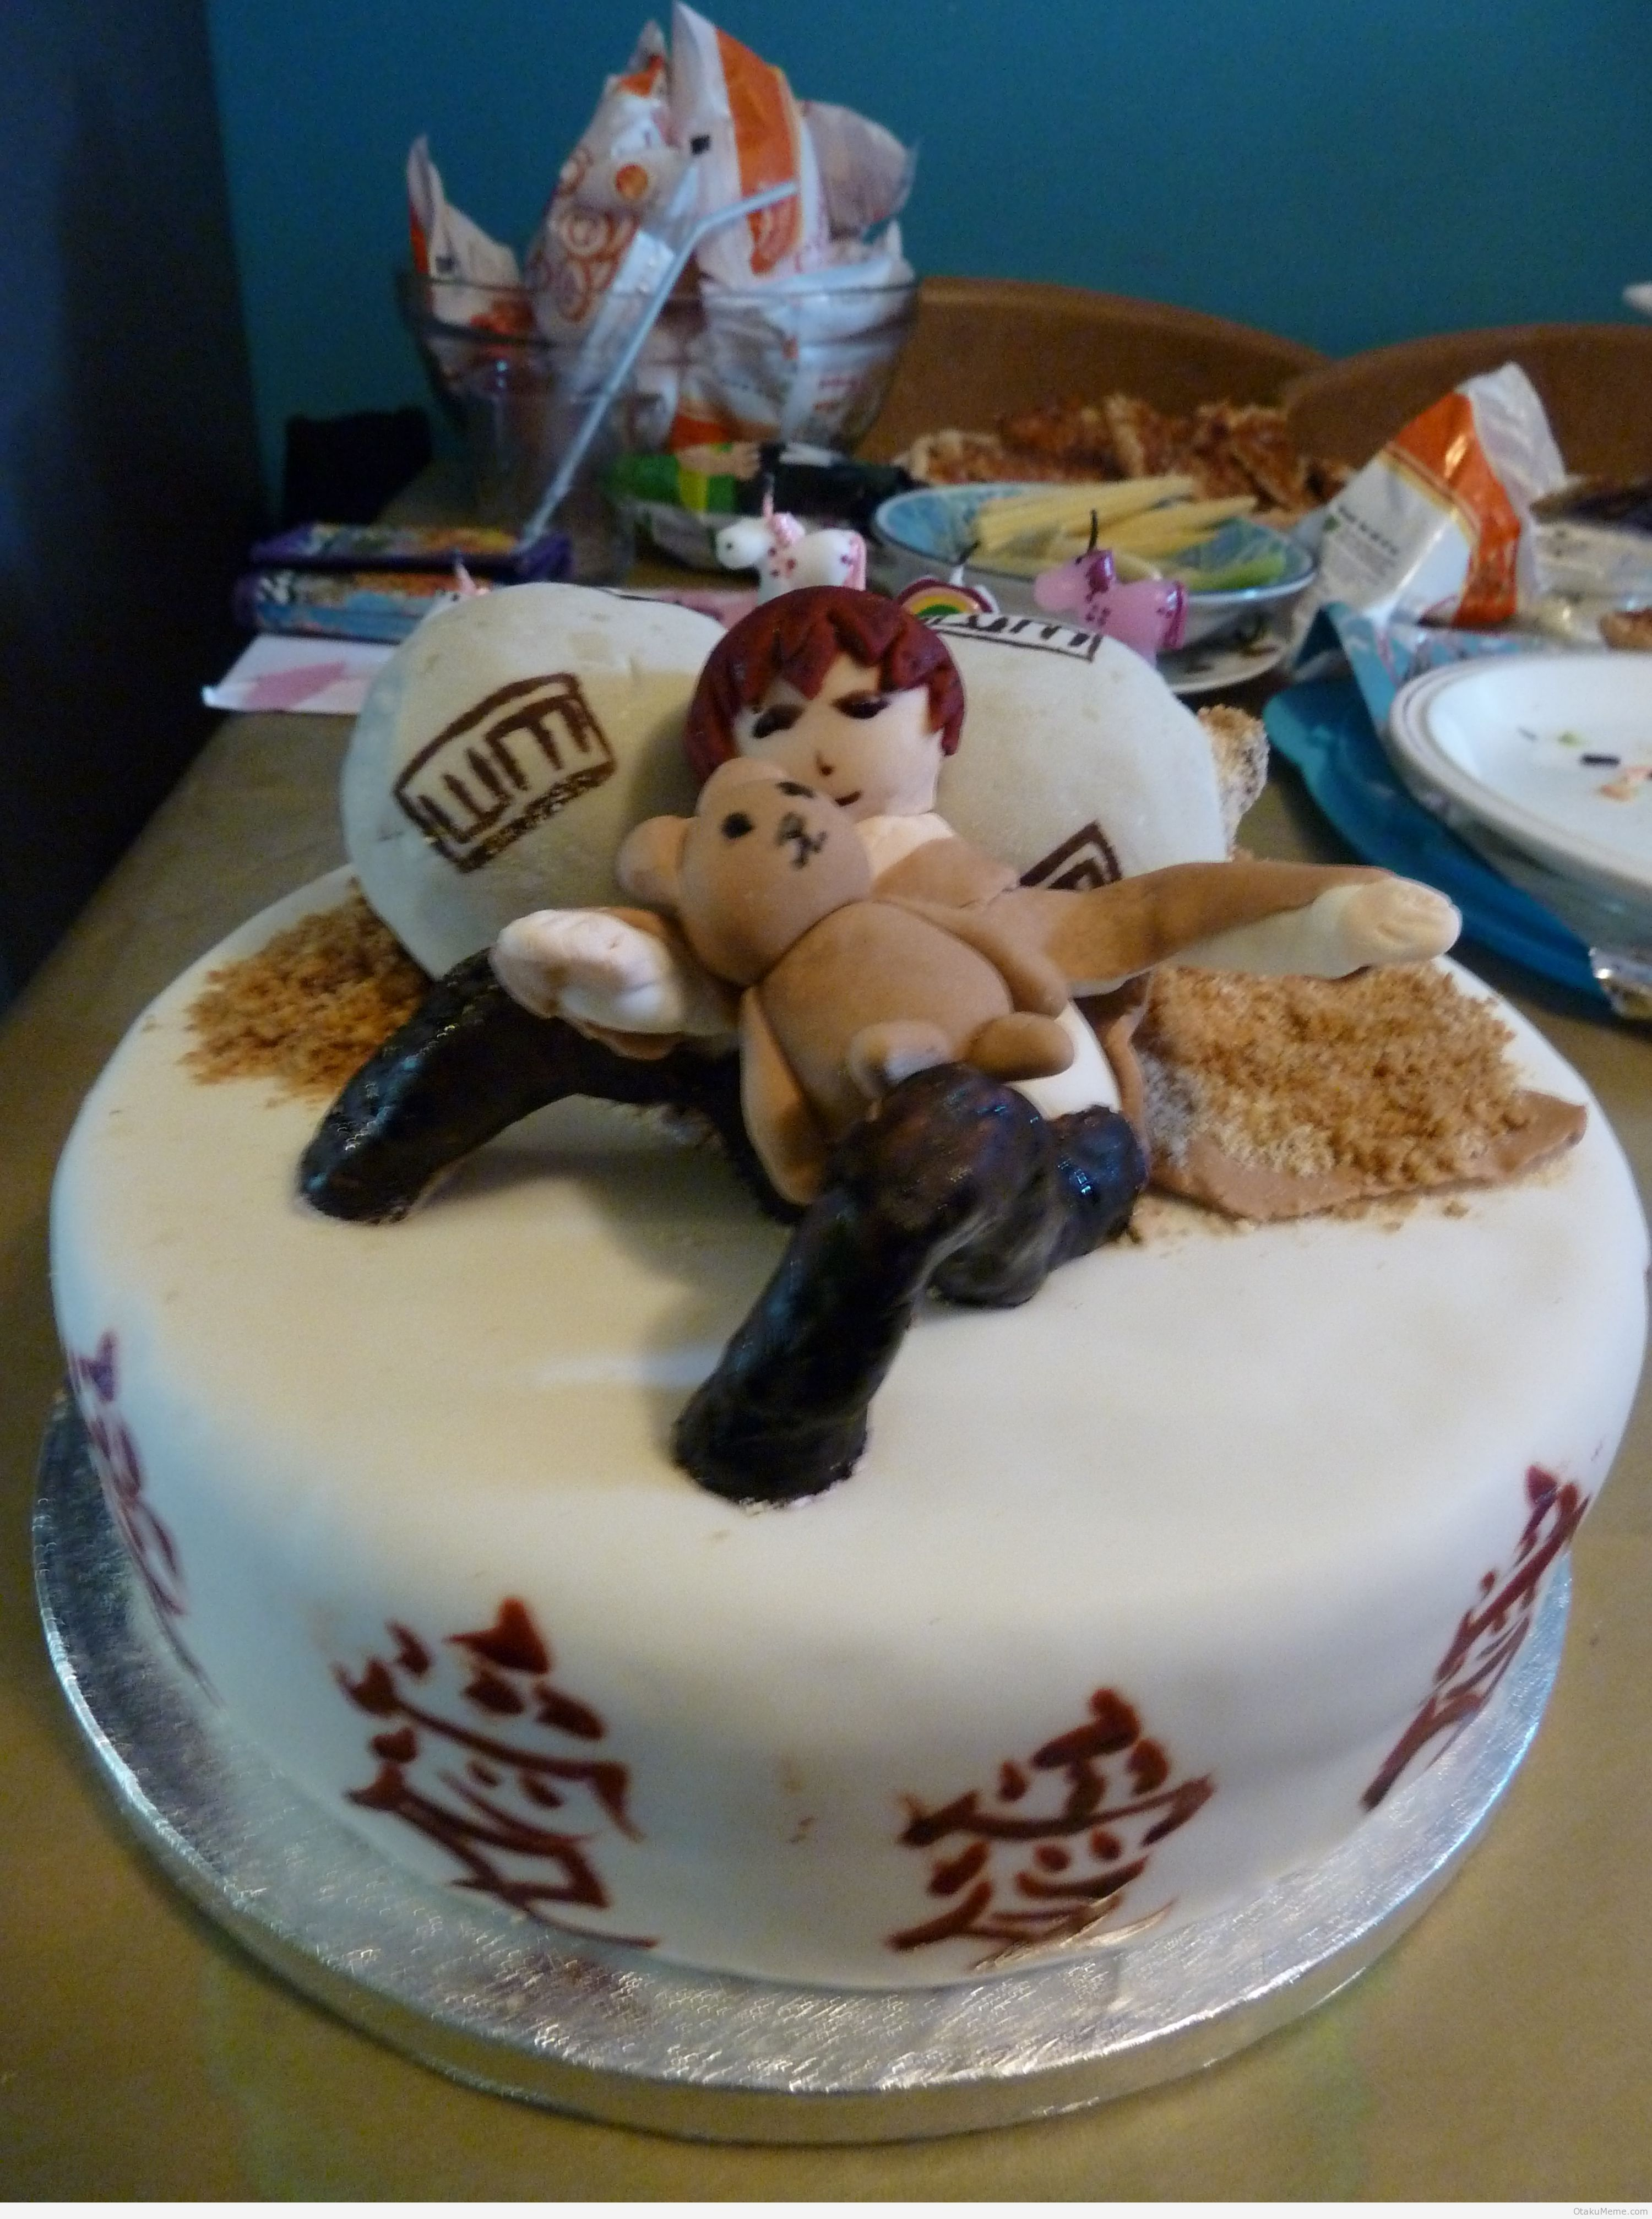 Th Birthday Cake Gaara From Naruto Oh How I Wish Someone Would - Funny 16th birthday cakes